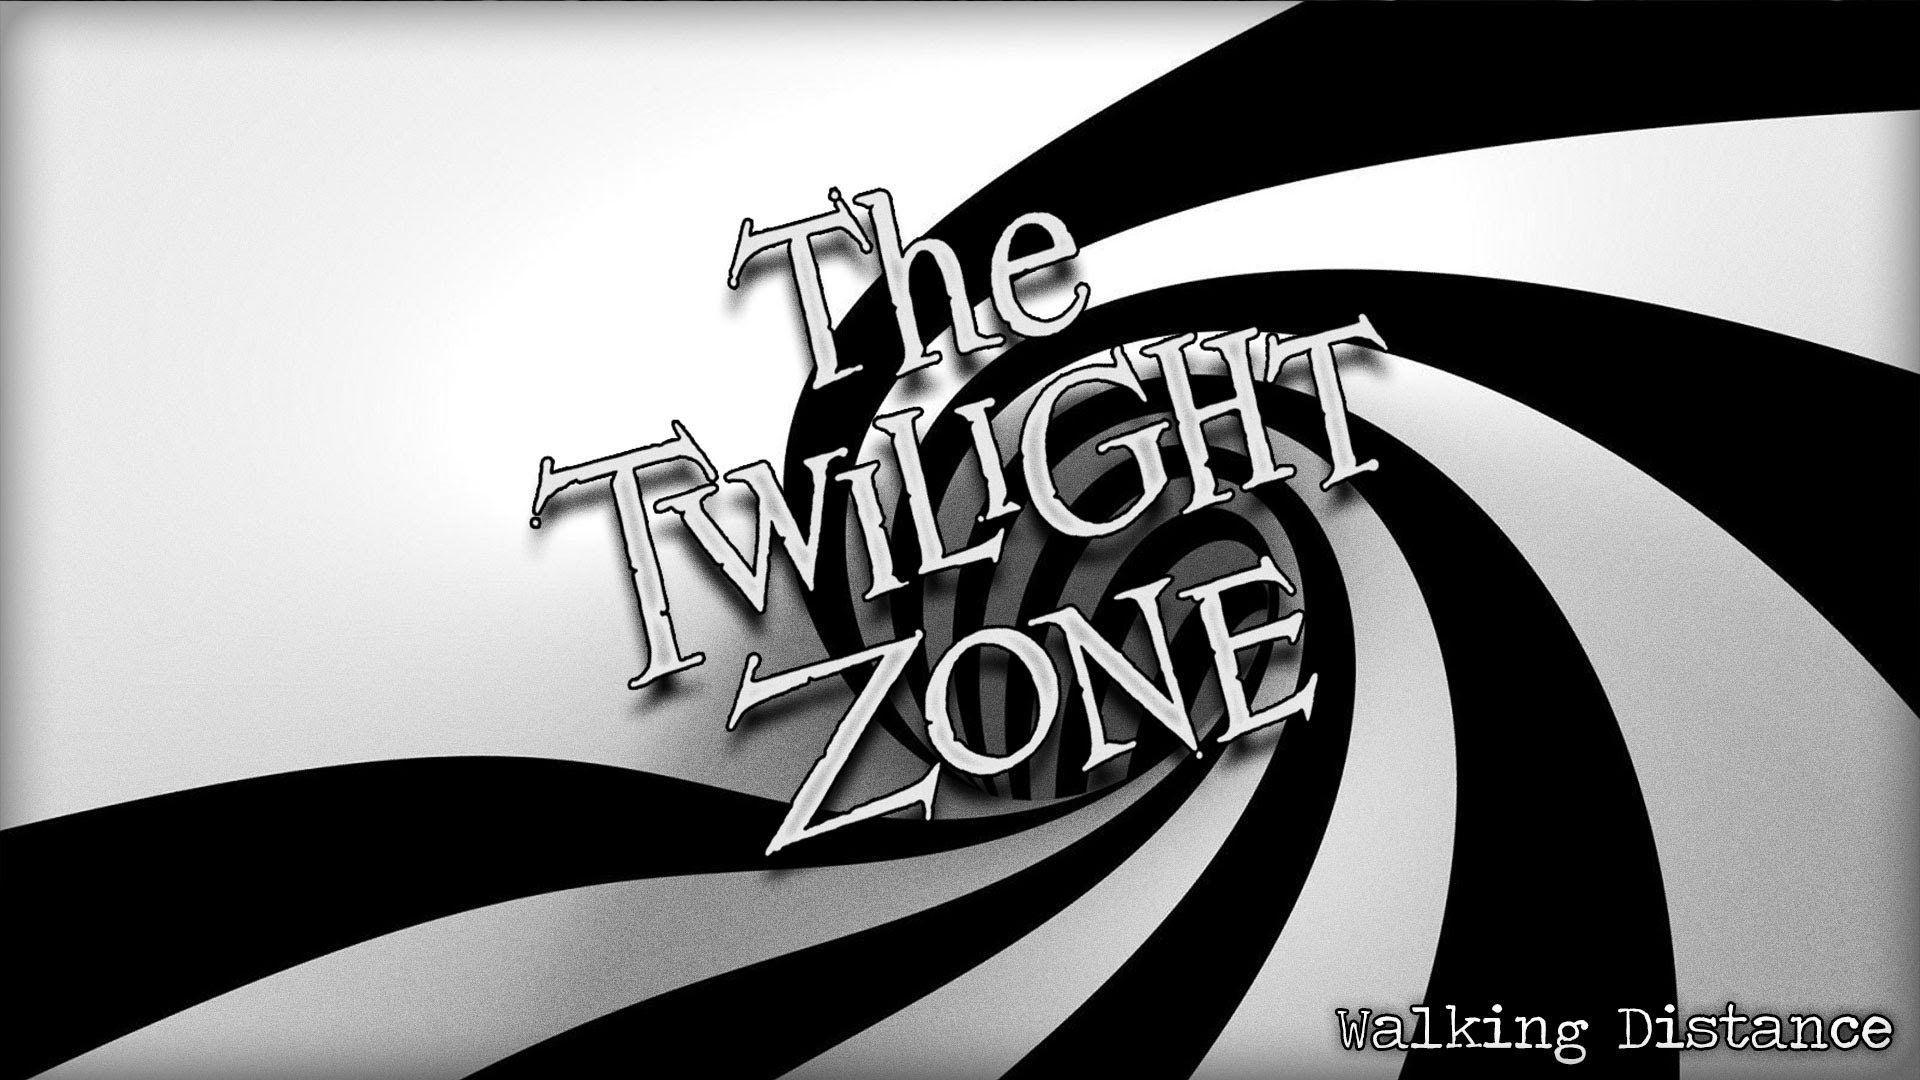 The Twilight Zone Podcast: Walking Distance